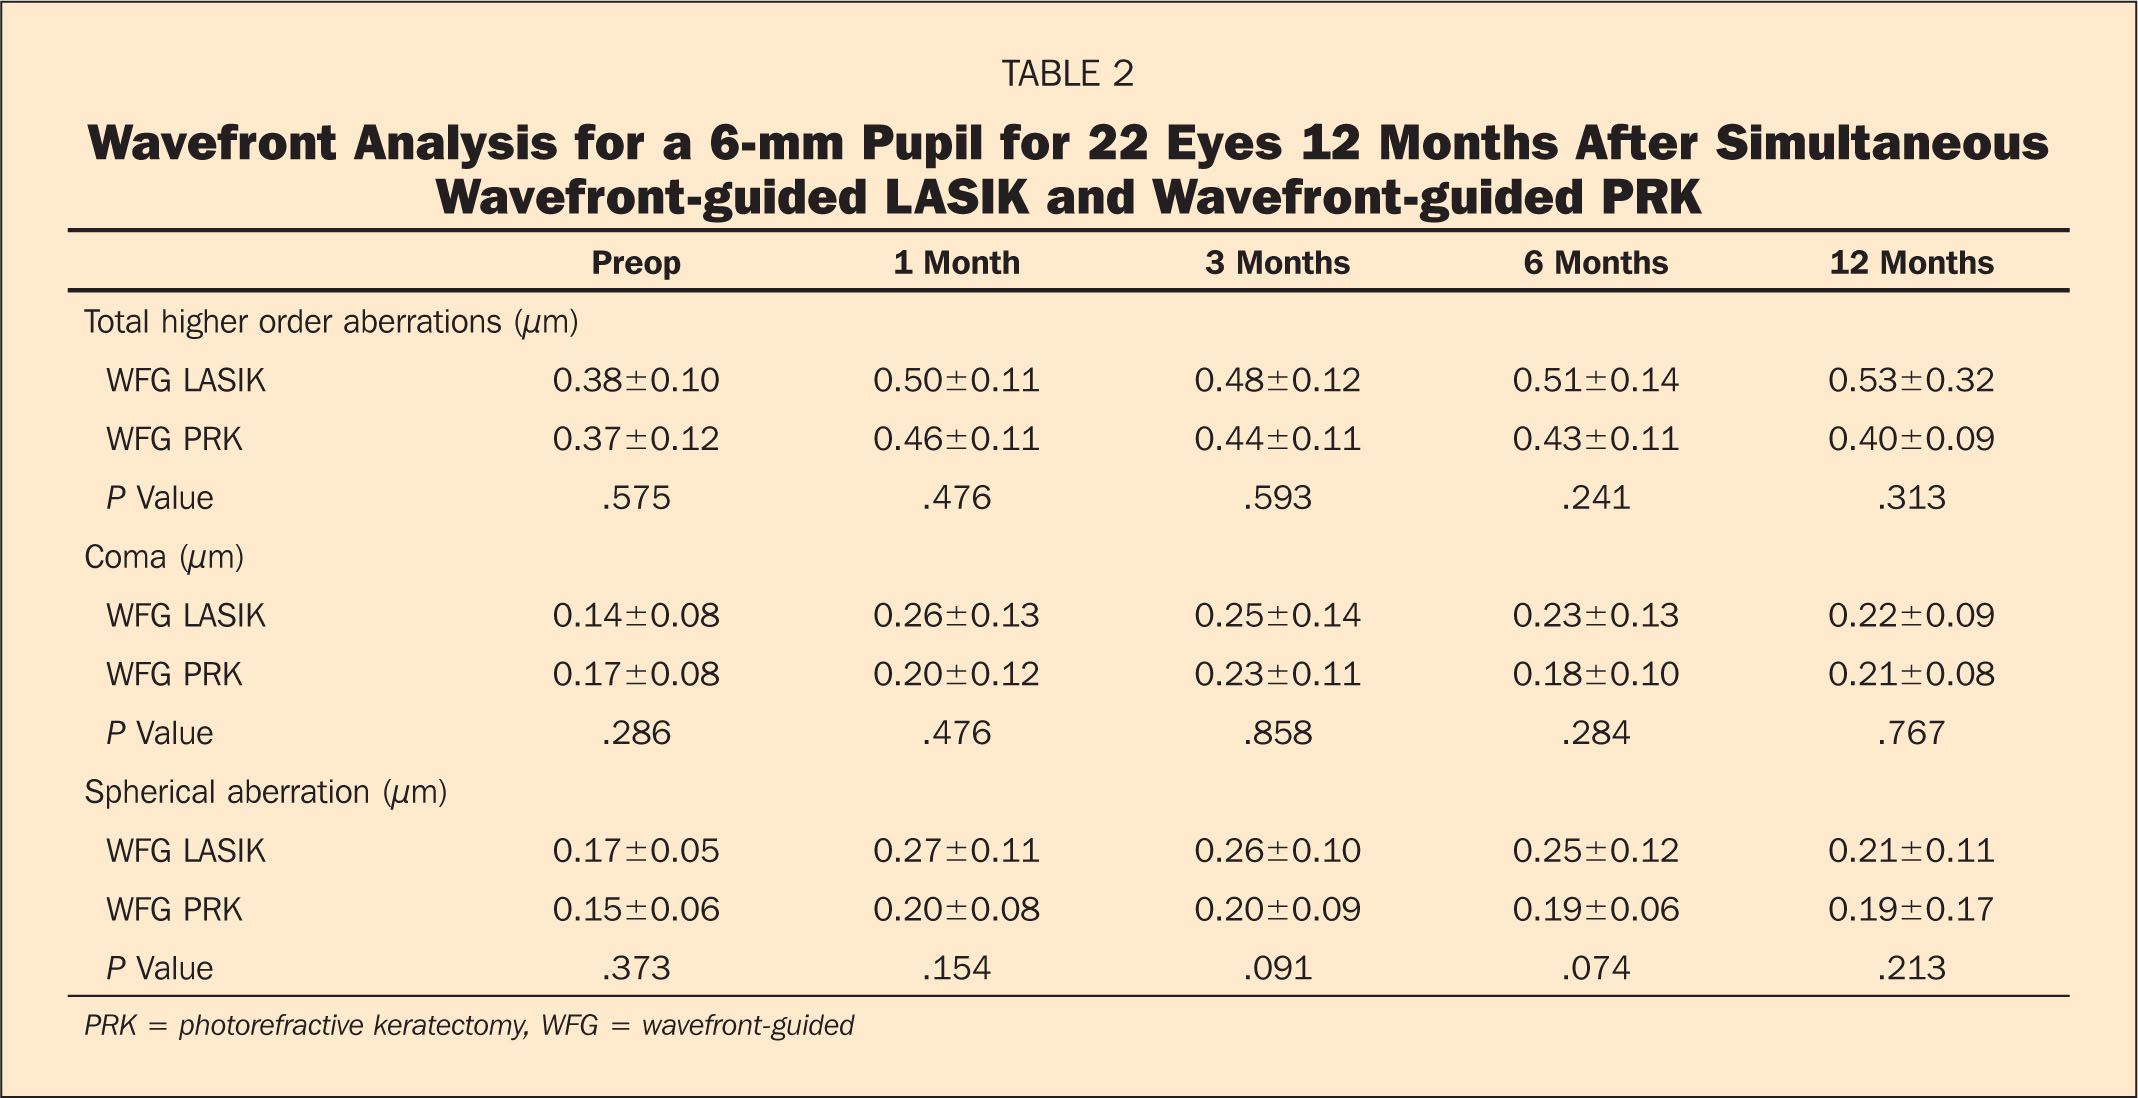 Wavefront Analysis for a 6-mm Pupil for 22 Eyes 12 Months After Simultaneous Wavefront-Guided LASIK and Wavefront-Guided PRK